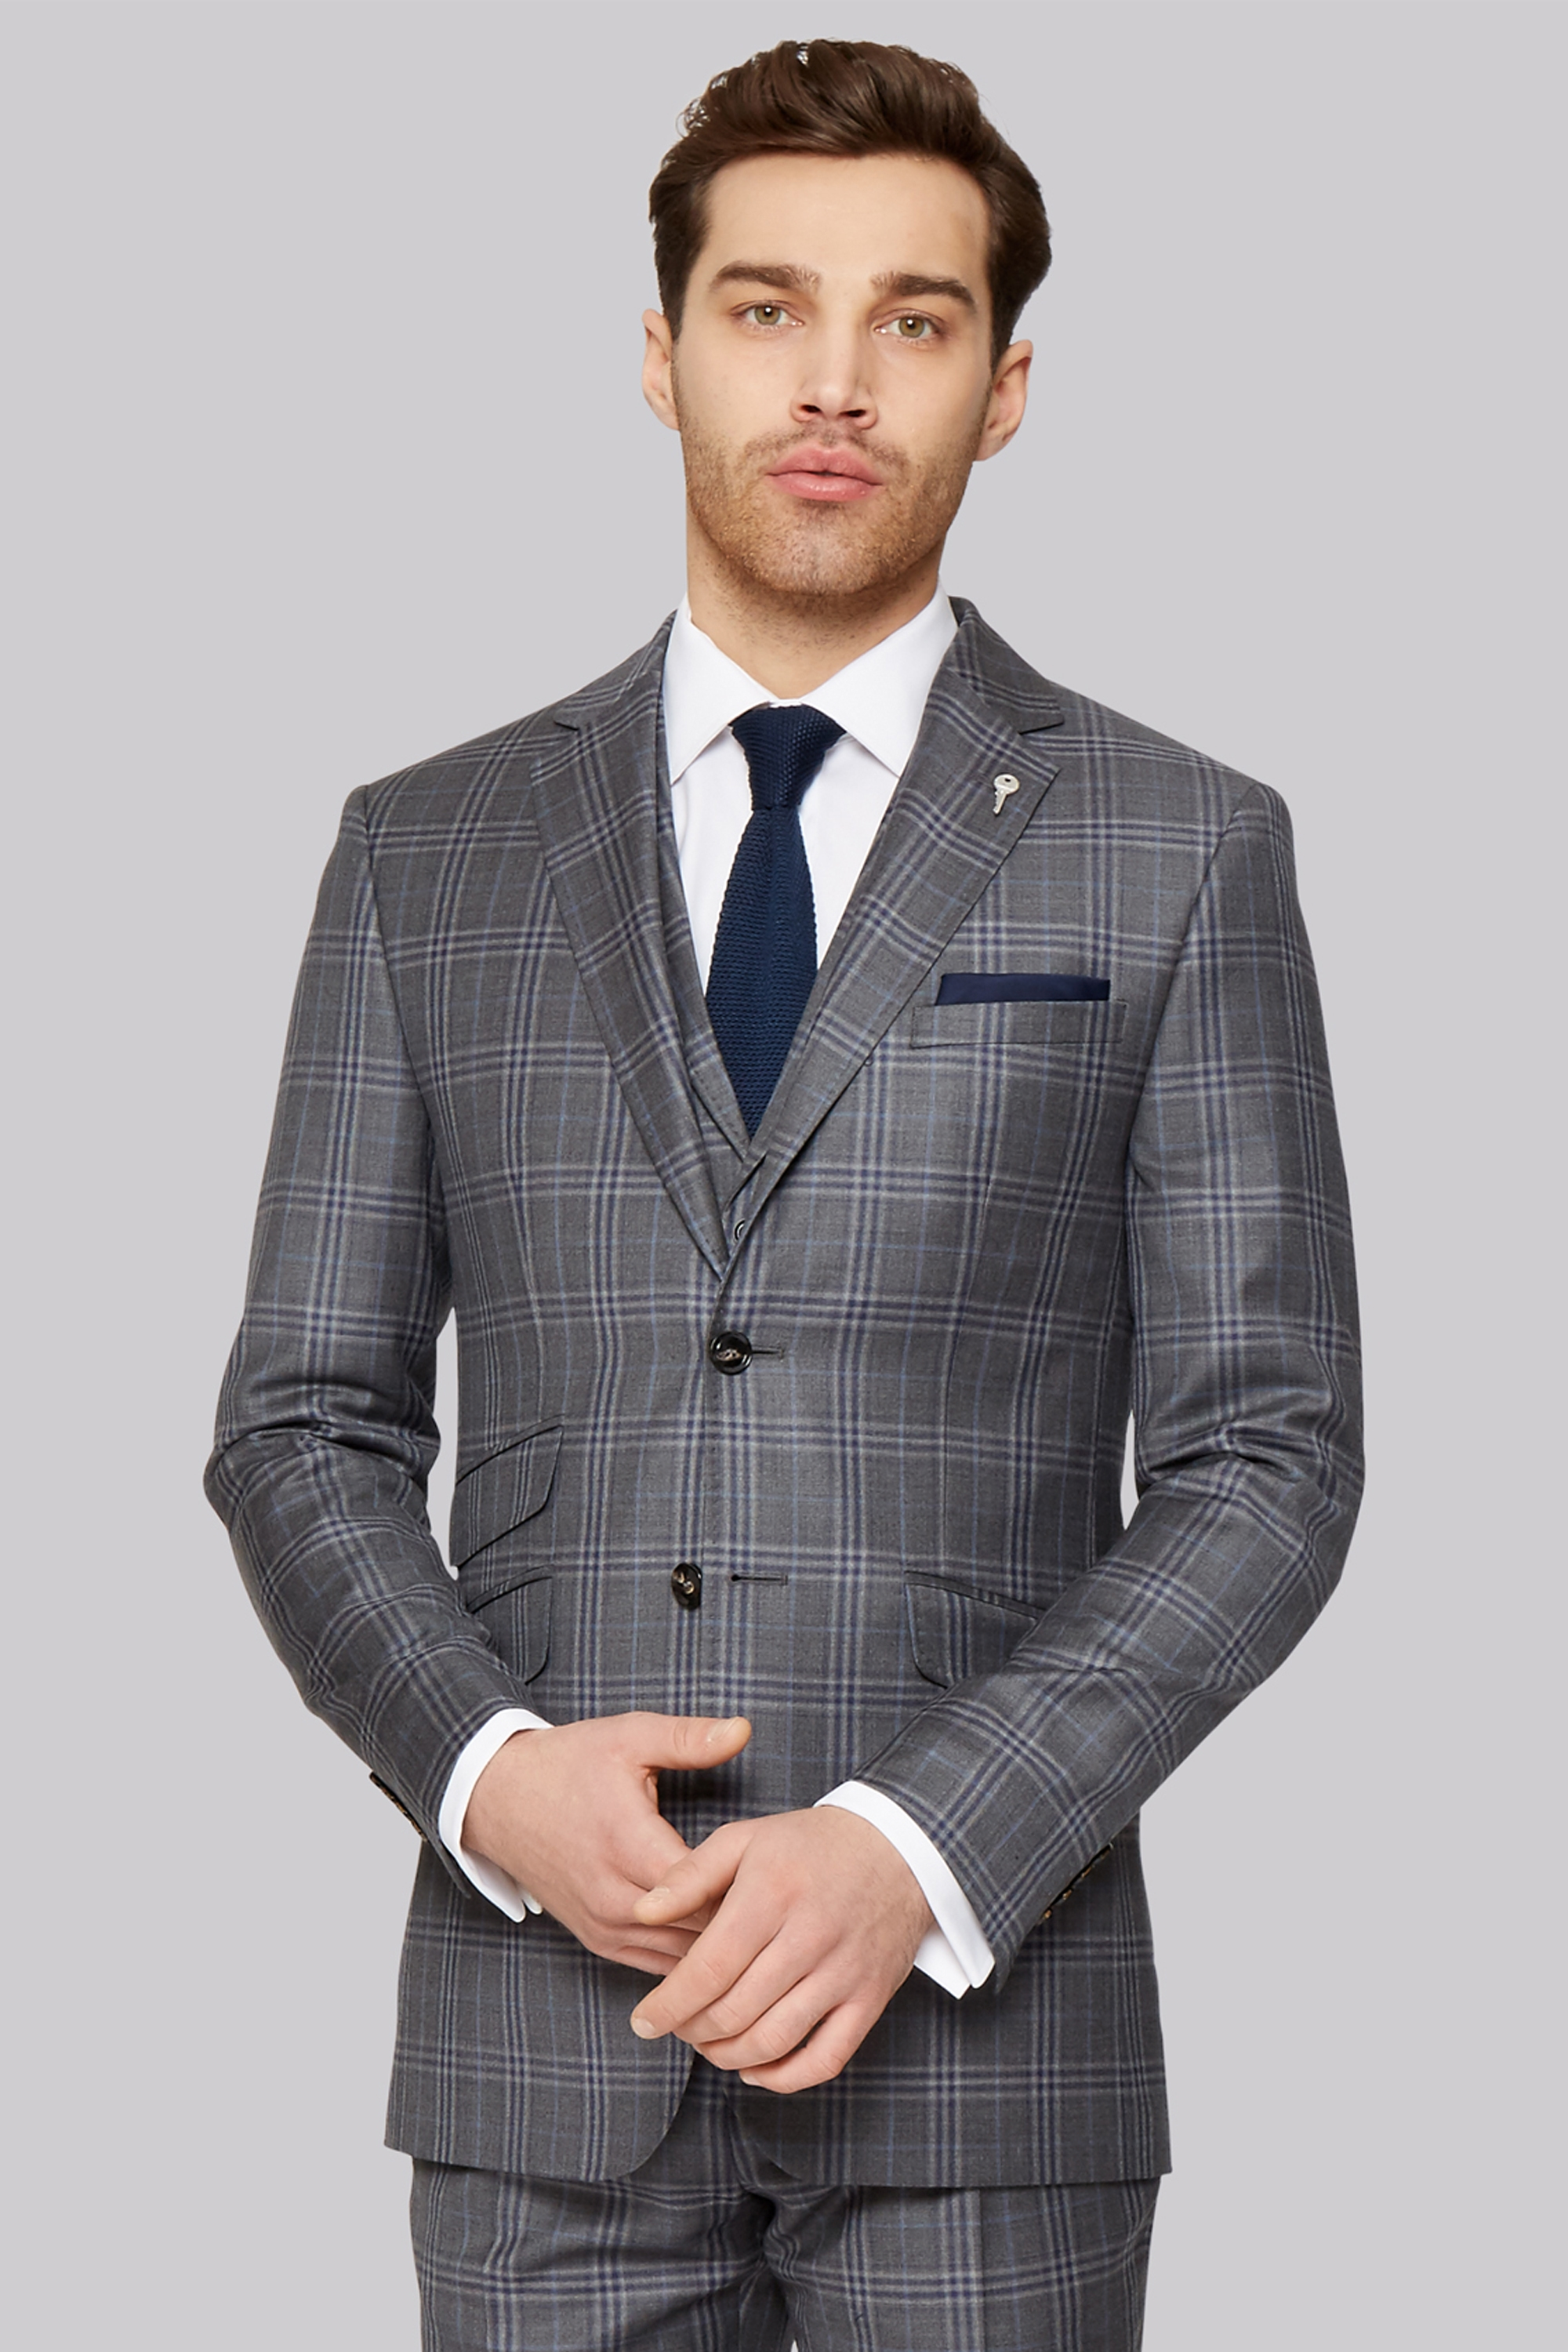 a4931121a1f3a ... Ted Baker Tailored Fit Grey Check Jacket. prev 50% off 3527c c2ad7 ...